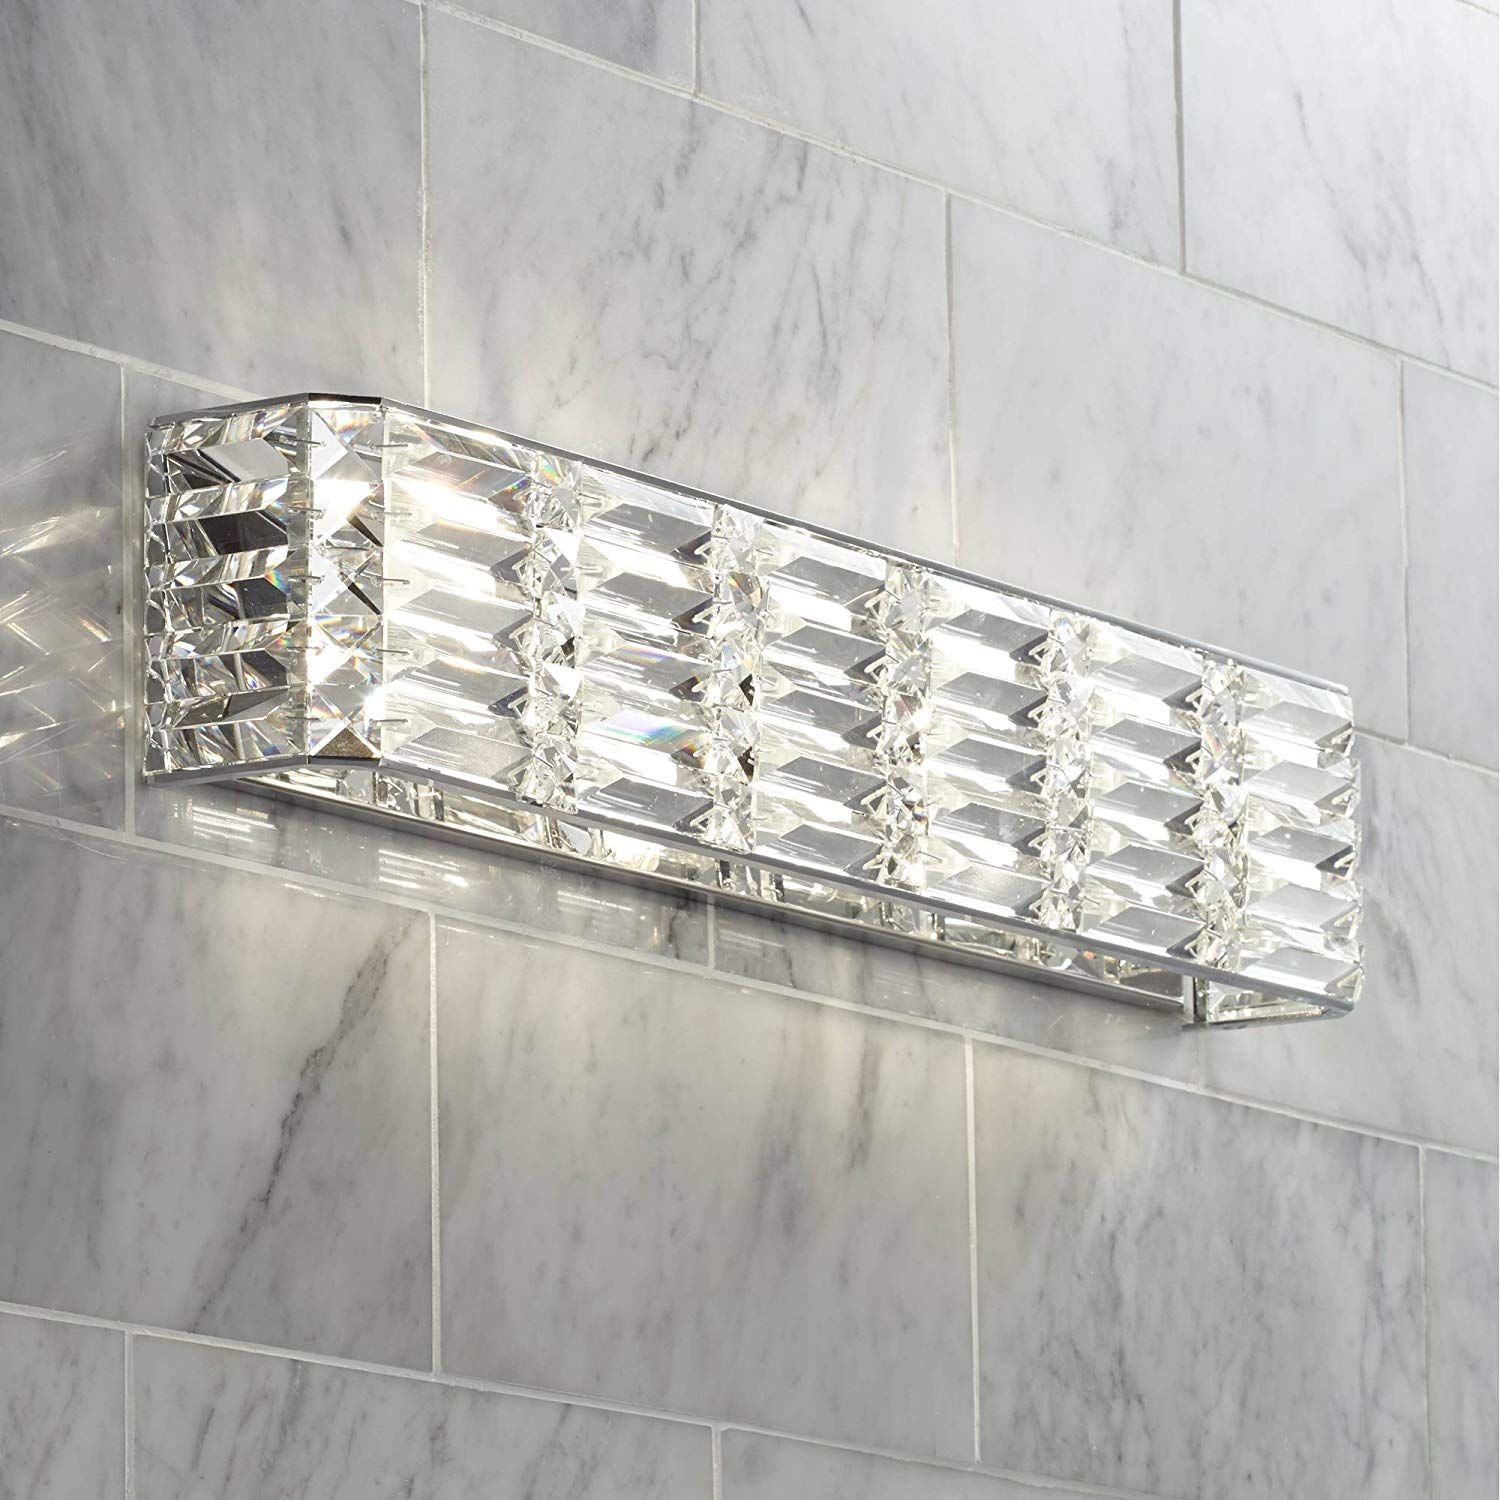 Vivienne Modern Wall Light Chrome Hardwired 24 1 2 Wide Light Bar Fixture Clear Crystal Accents For Bathroom In 2020 Crystal Bathroom Lighting Crystal Bath Bath Light